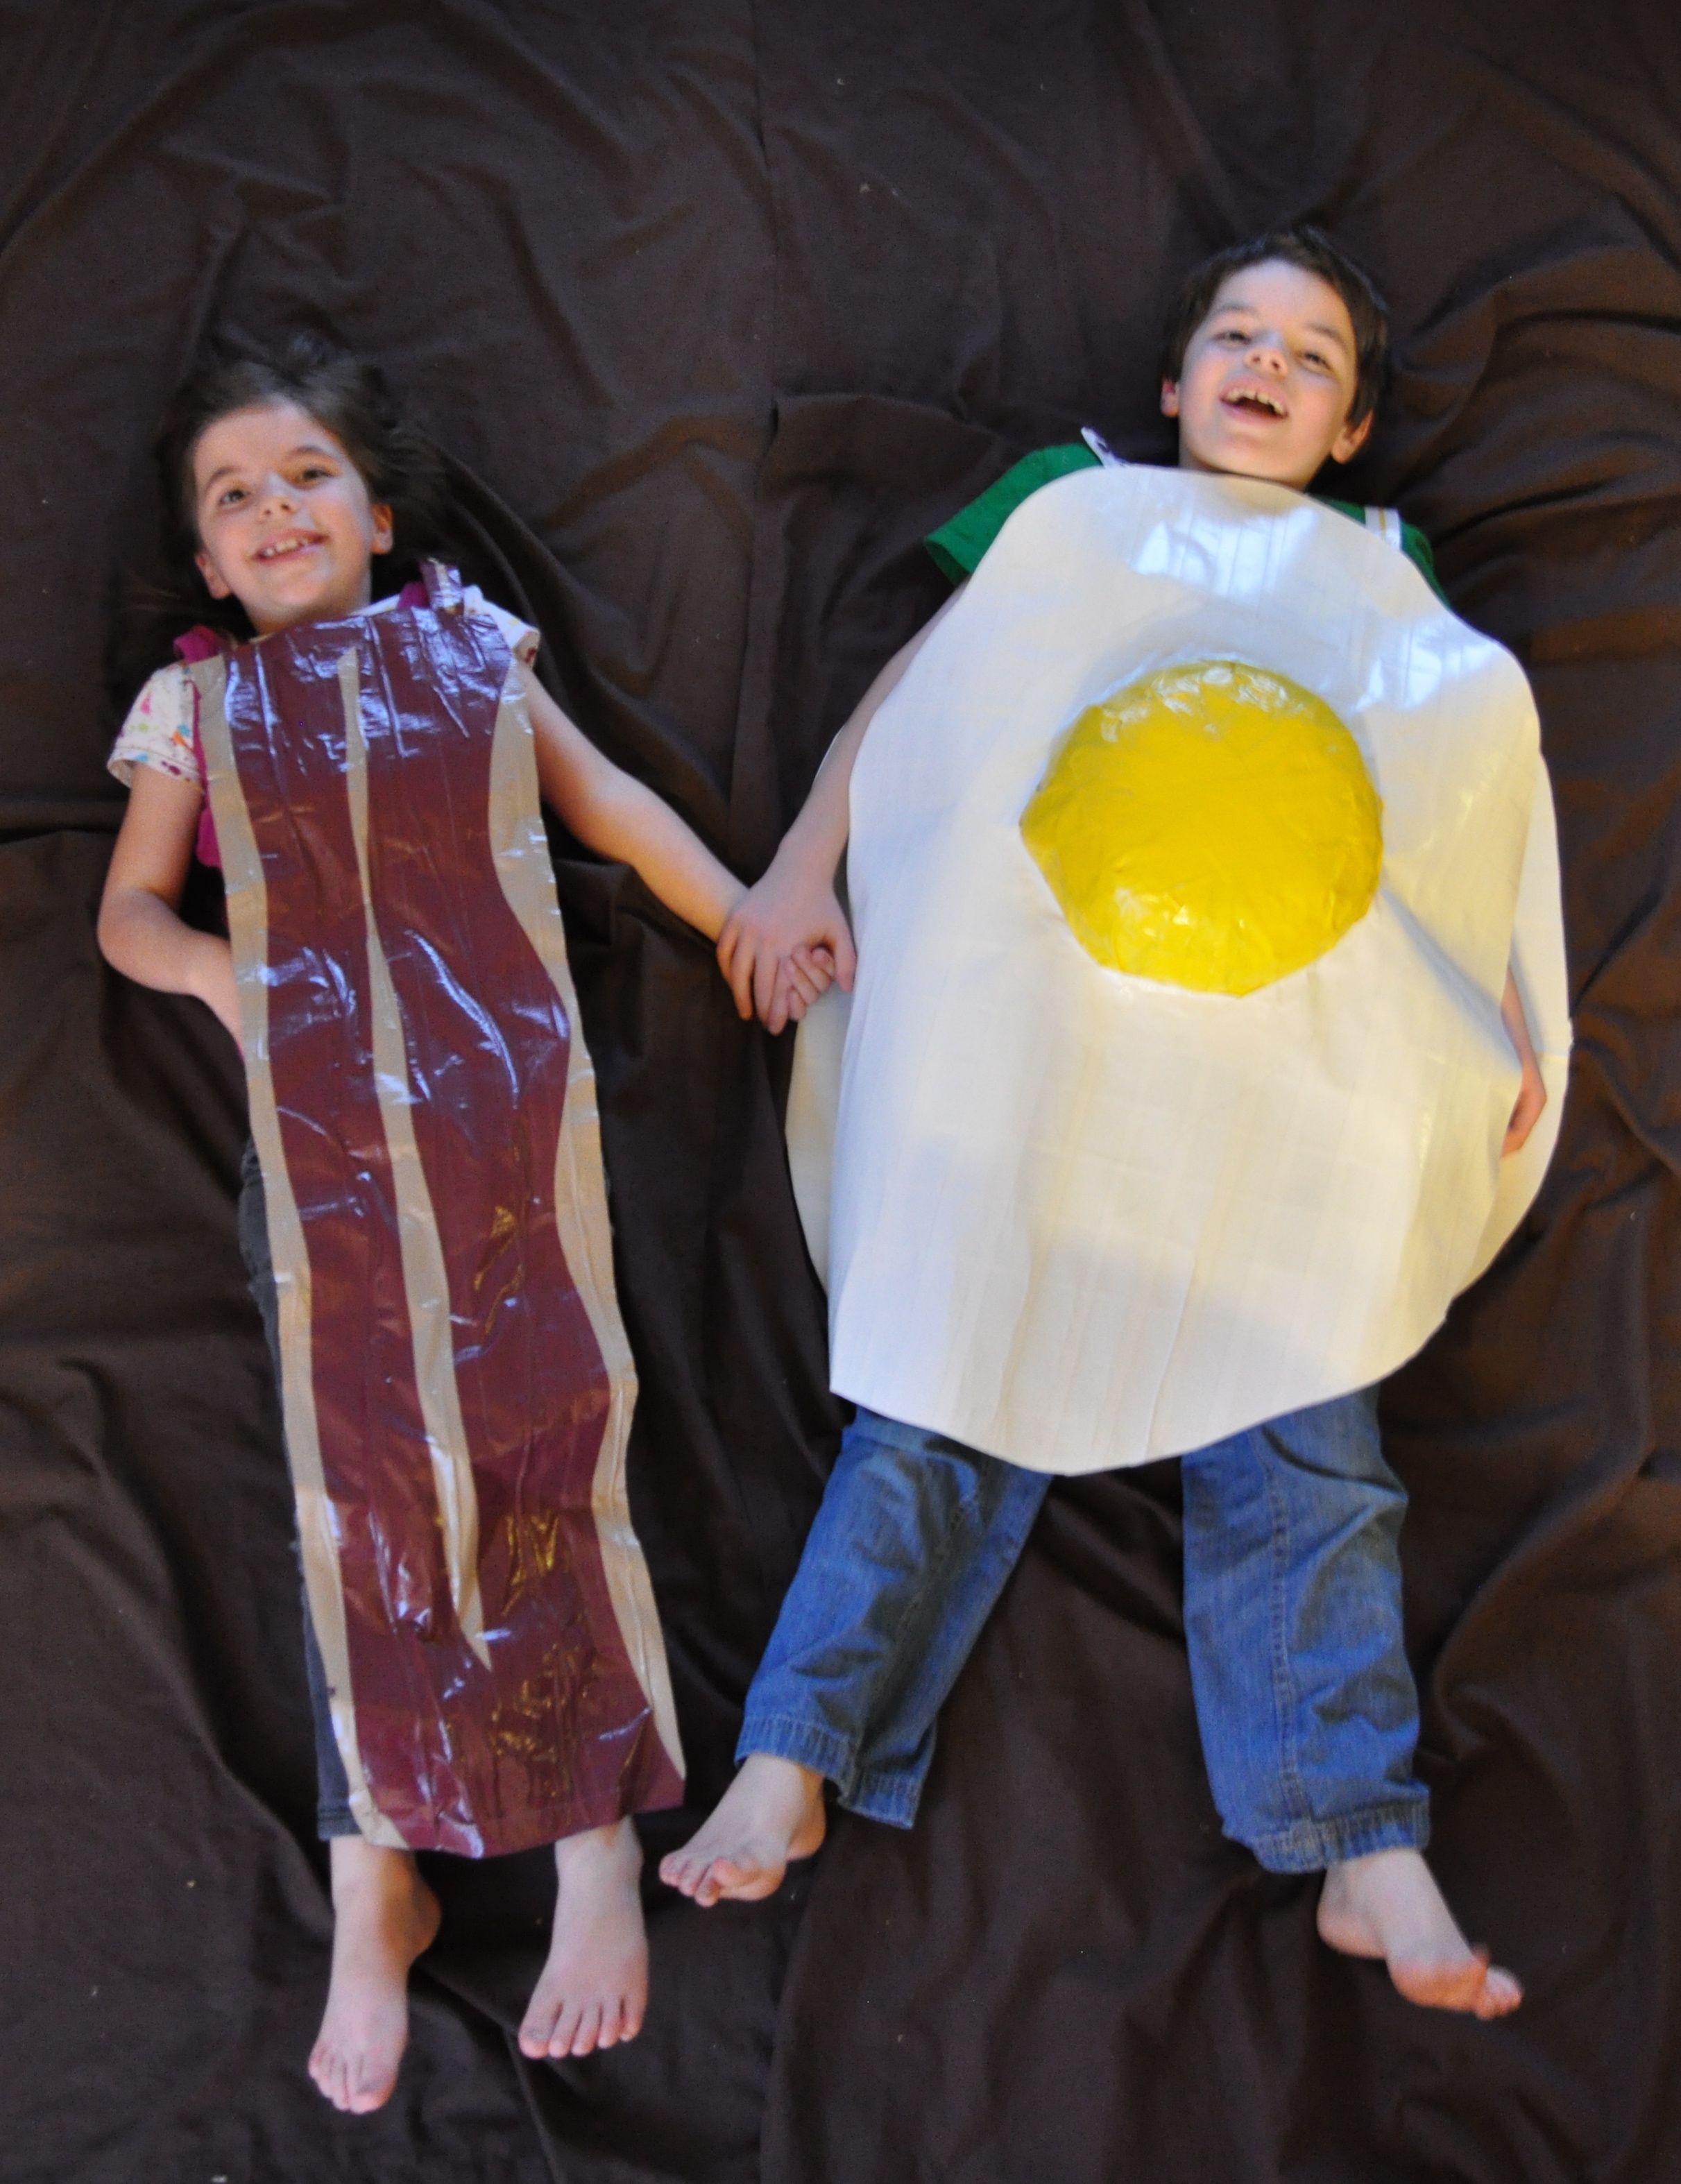 Bacon and Eggs Costume Breakfast Buddies Fancy Dress Couples Novelty Food Outfit